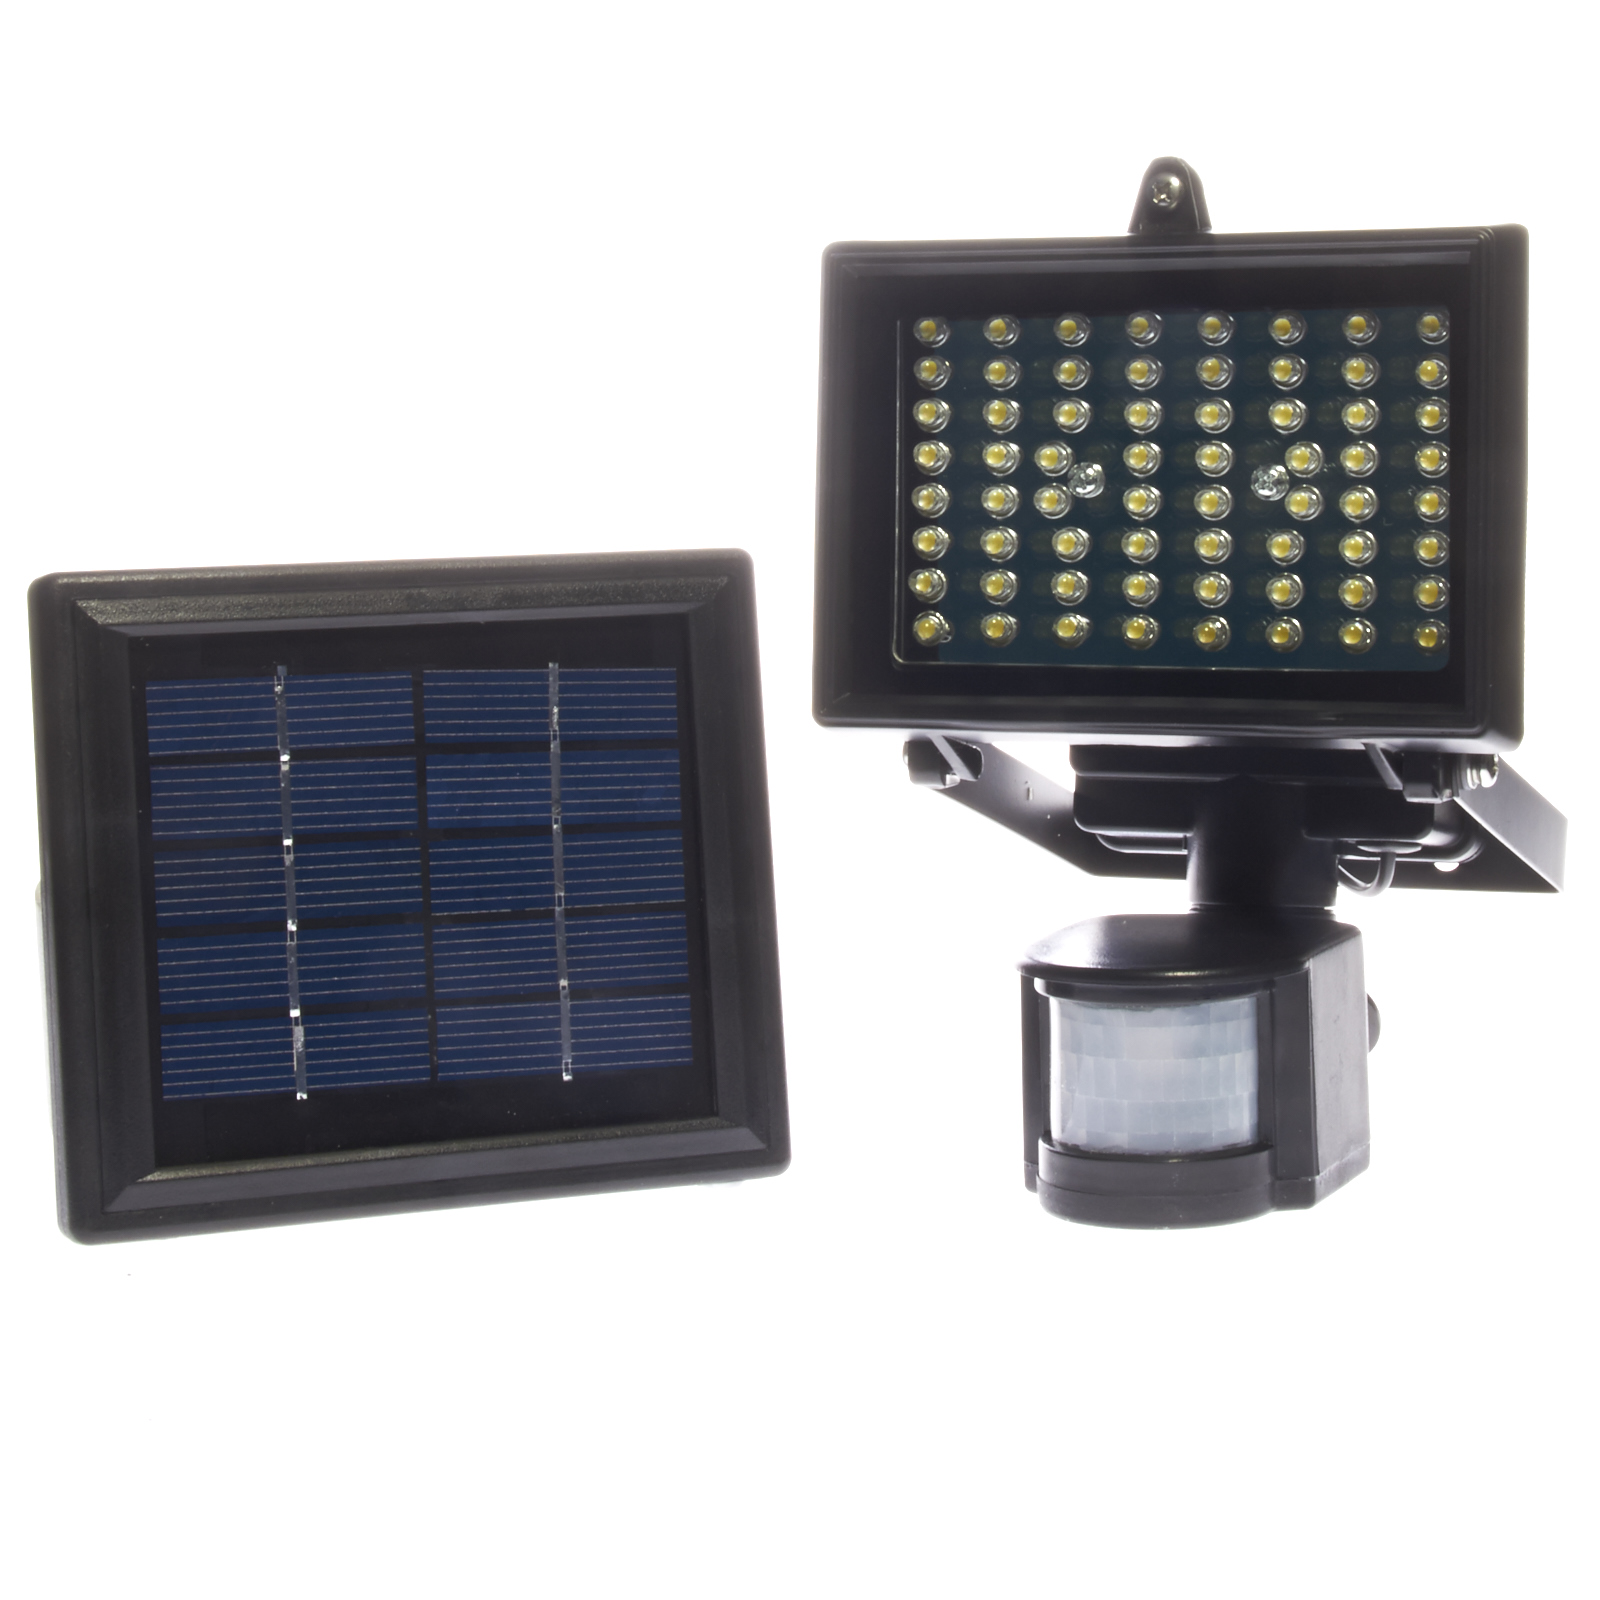 64 Led Solar Powered Outdoor Digital Pir Motion Sensor